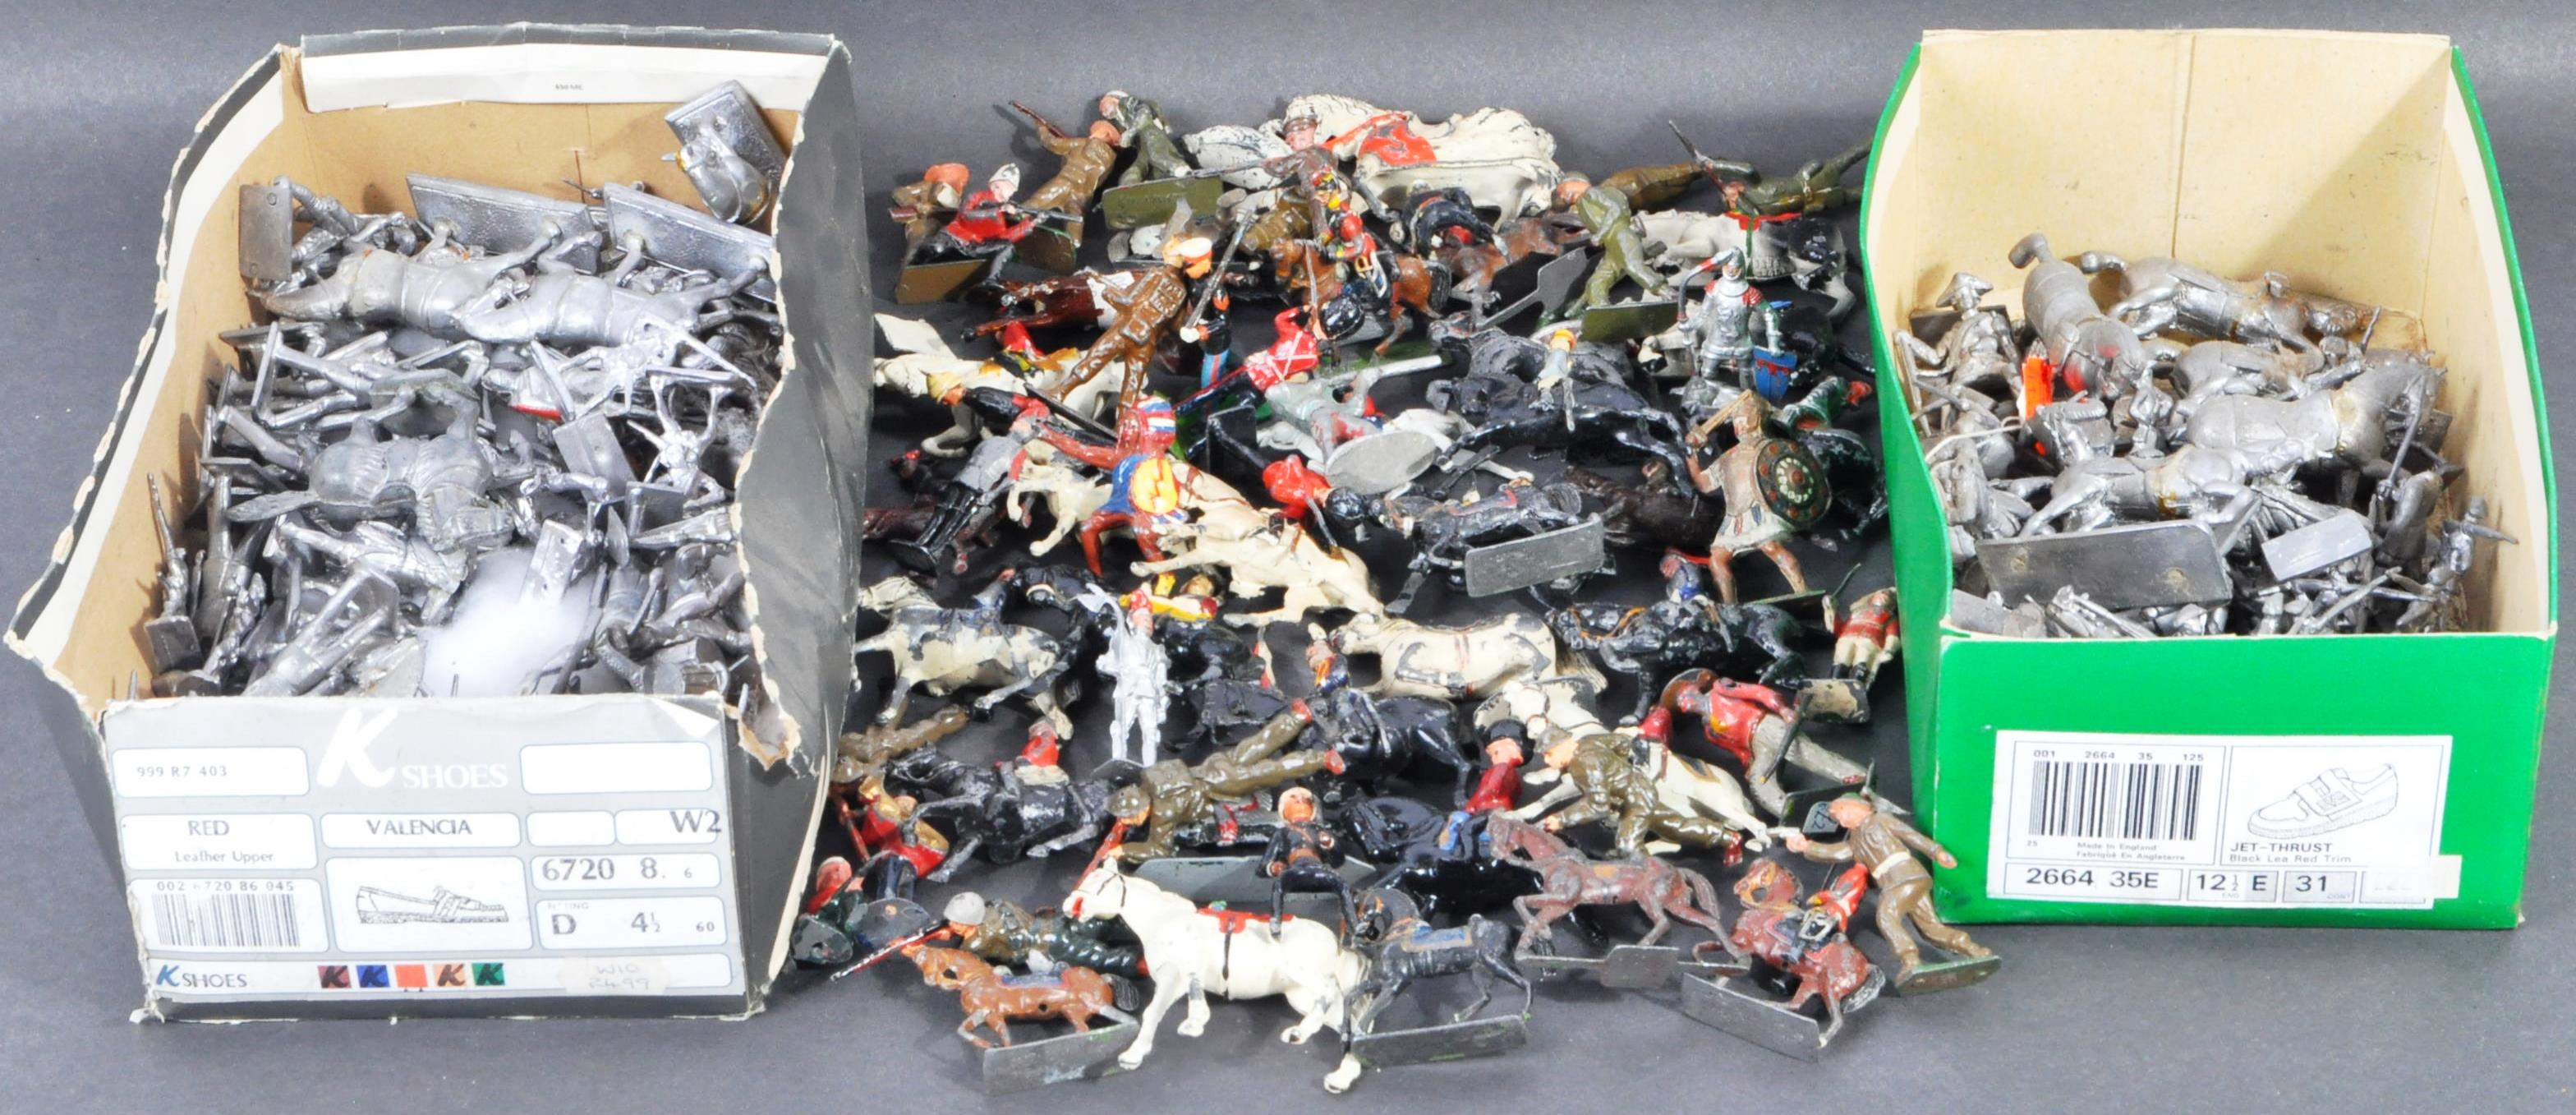 LEAD SOLDIERS - LARGE COLLECTION OF VINTAGE LEAD SOLDIERS